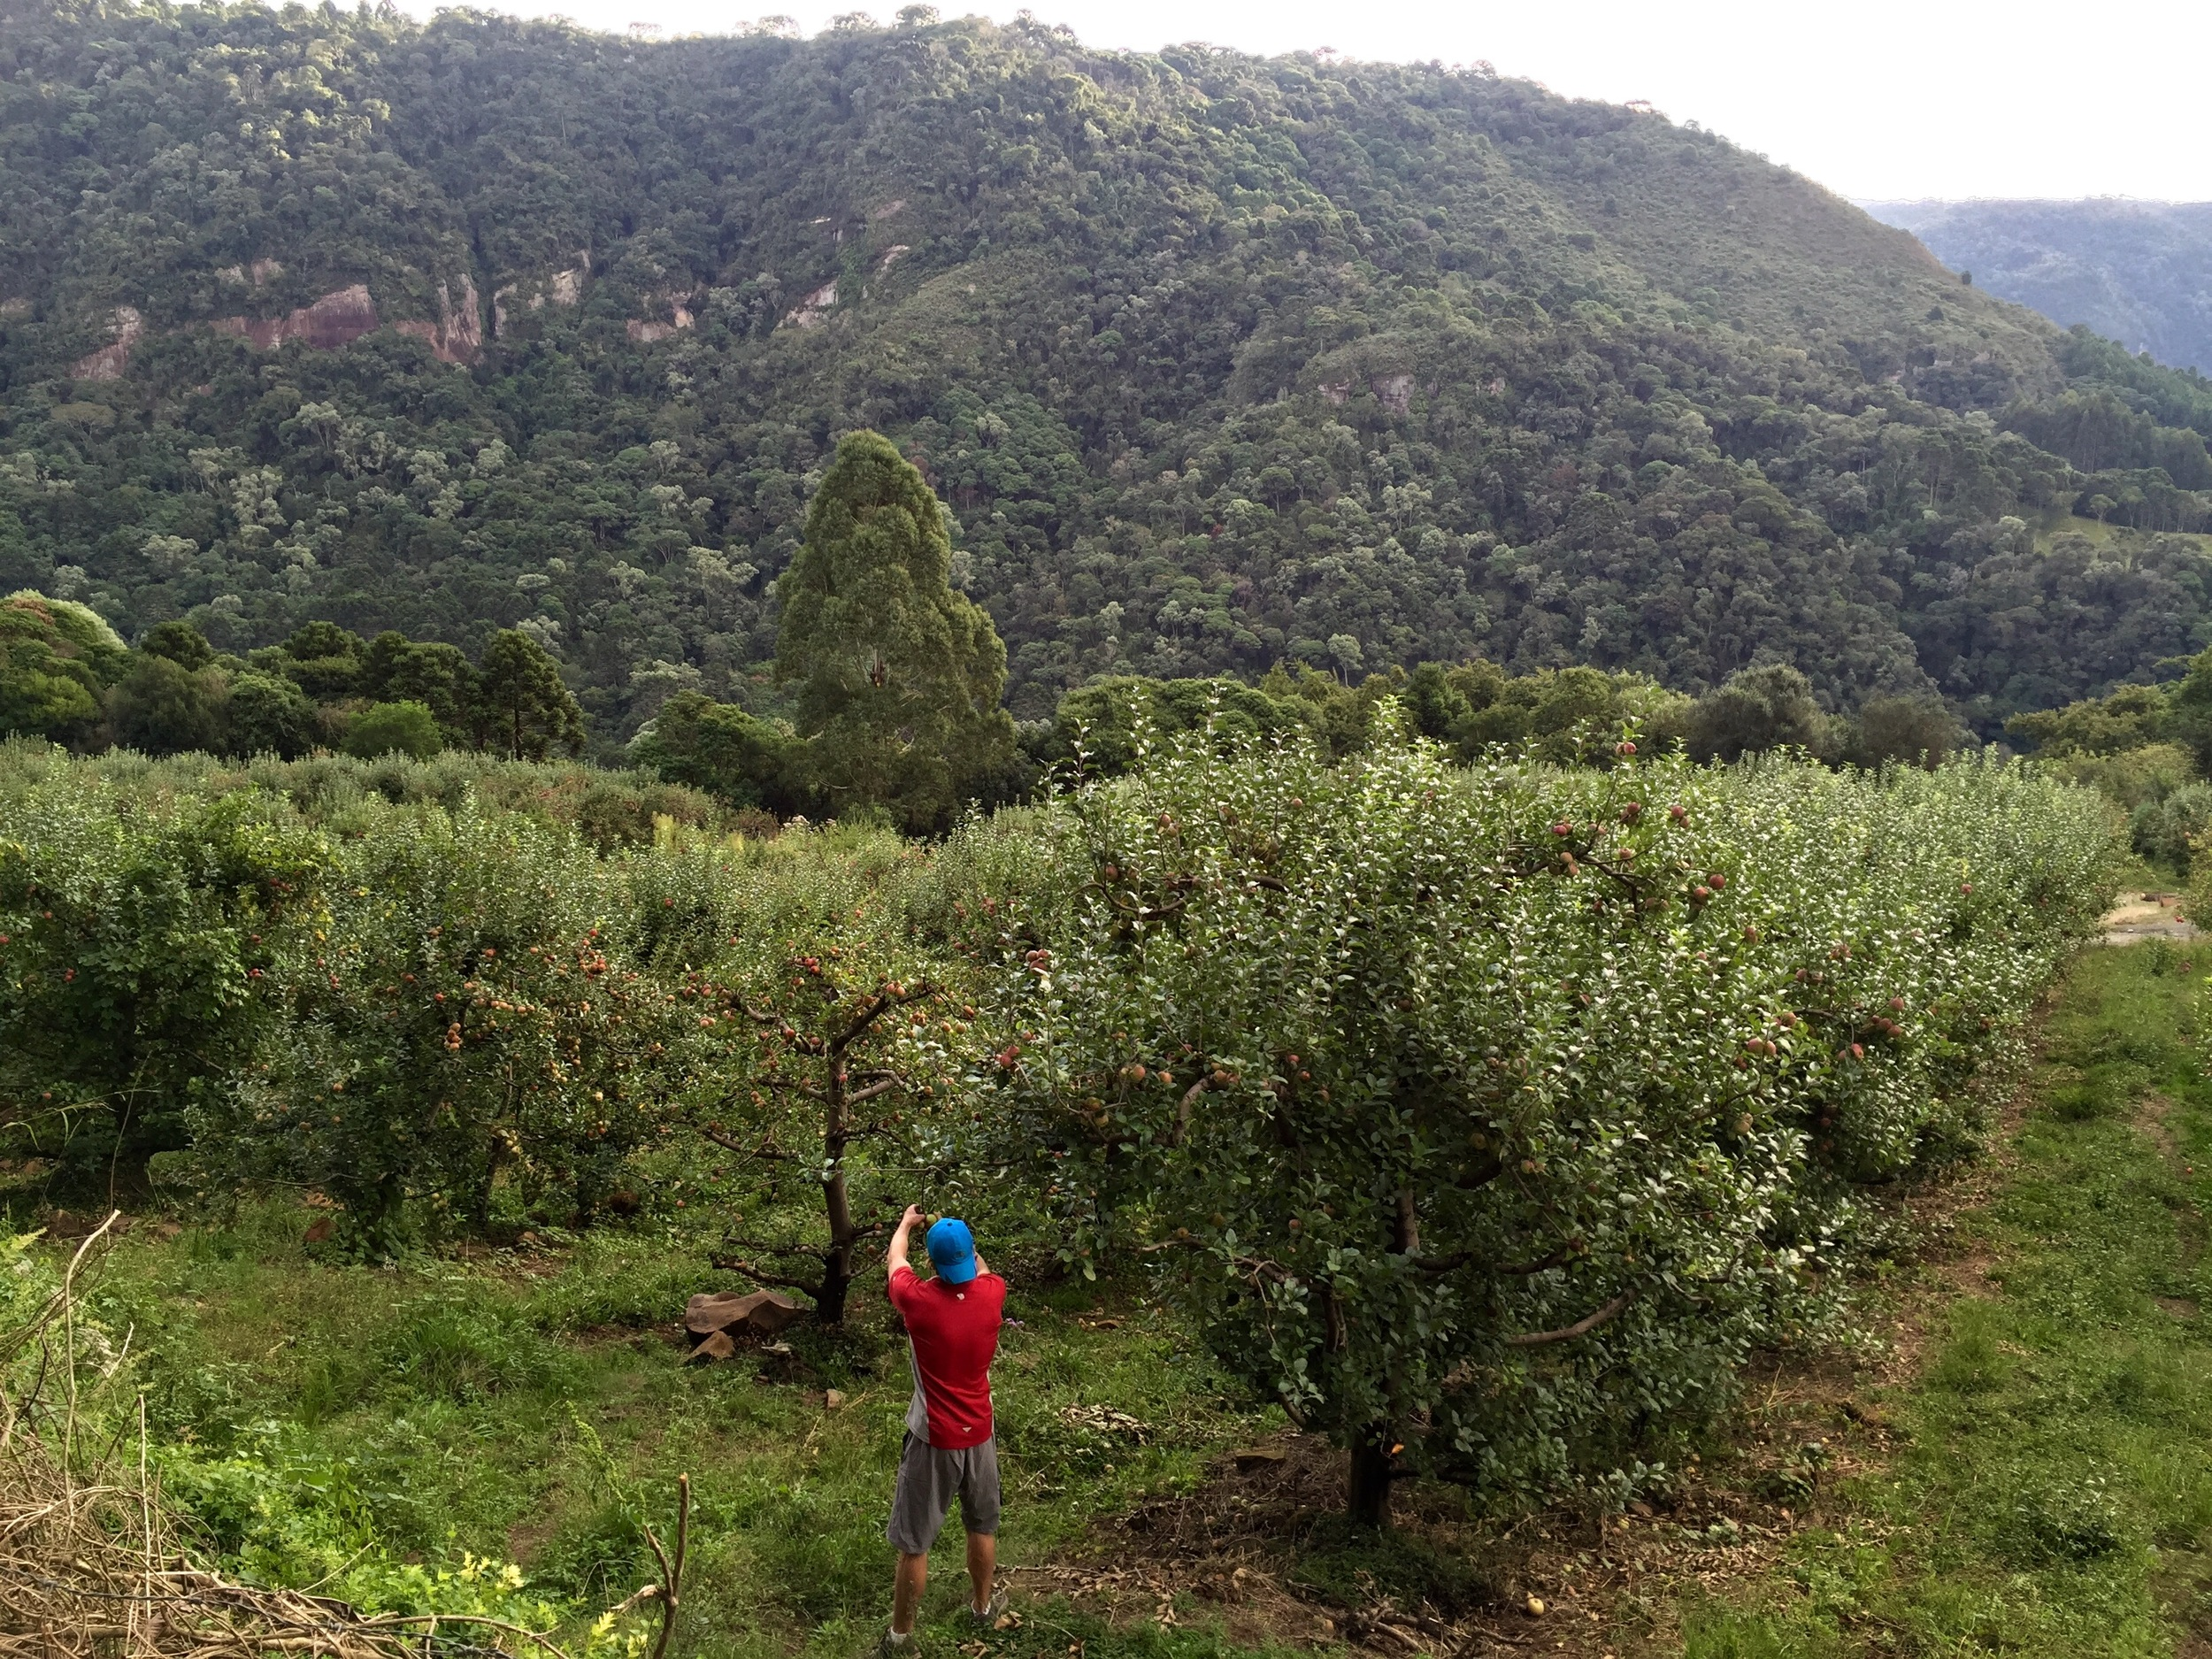 Jonathan makes himself at home at a roadside apple orchard in the Serra Catarinese (mountain region of Santa Catarina)